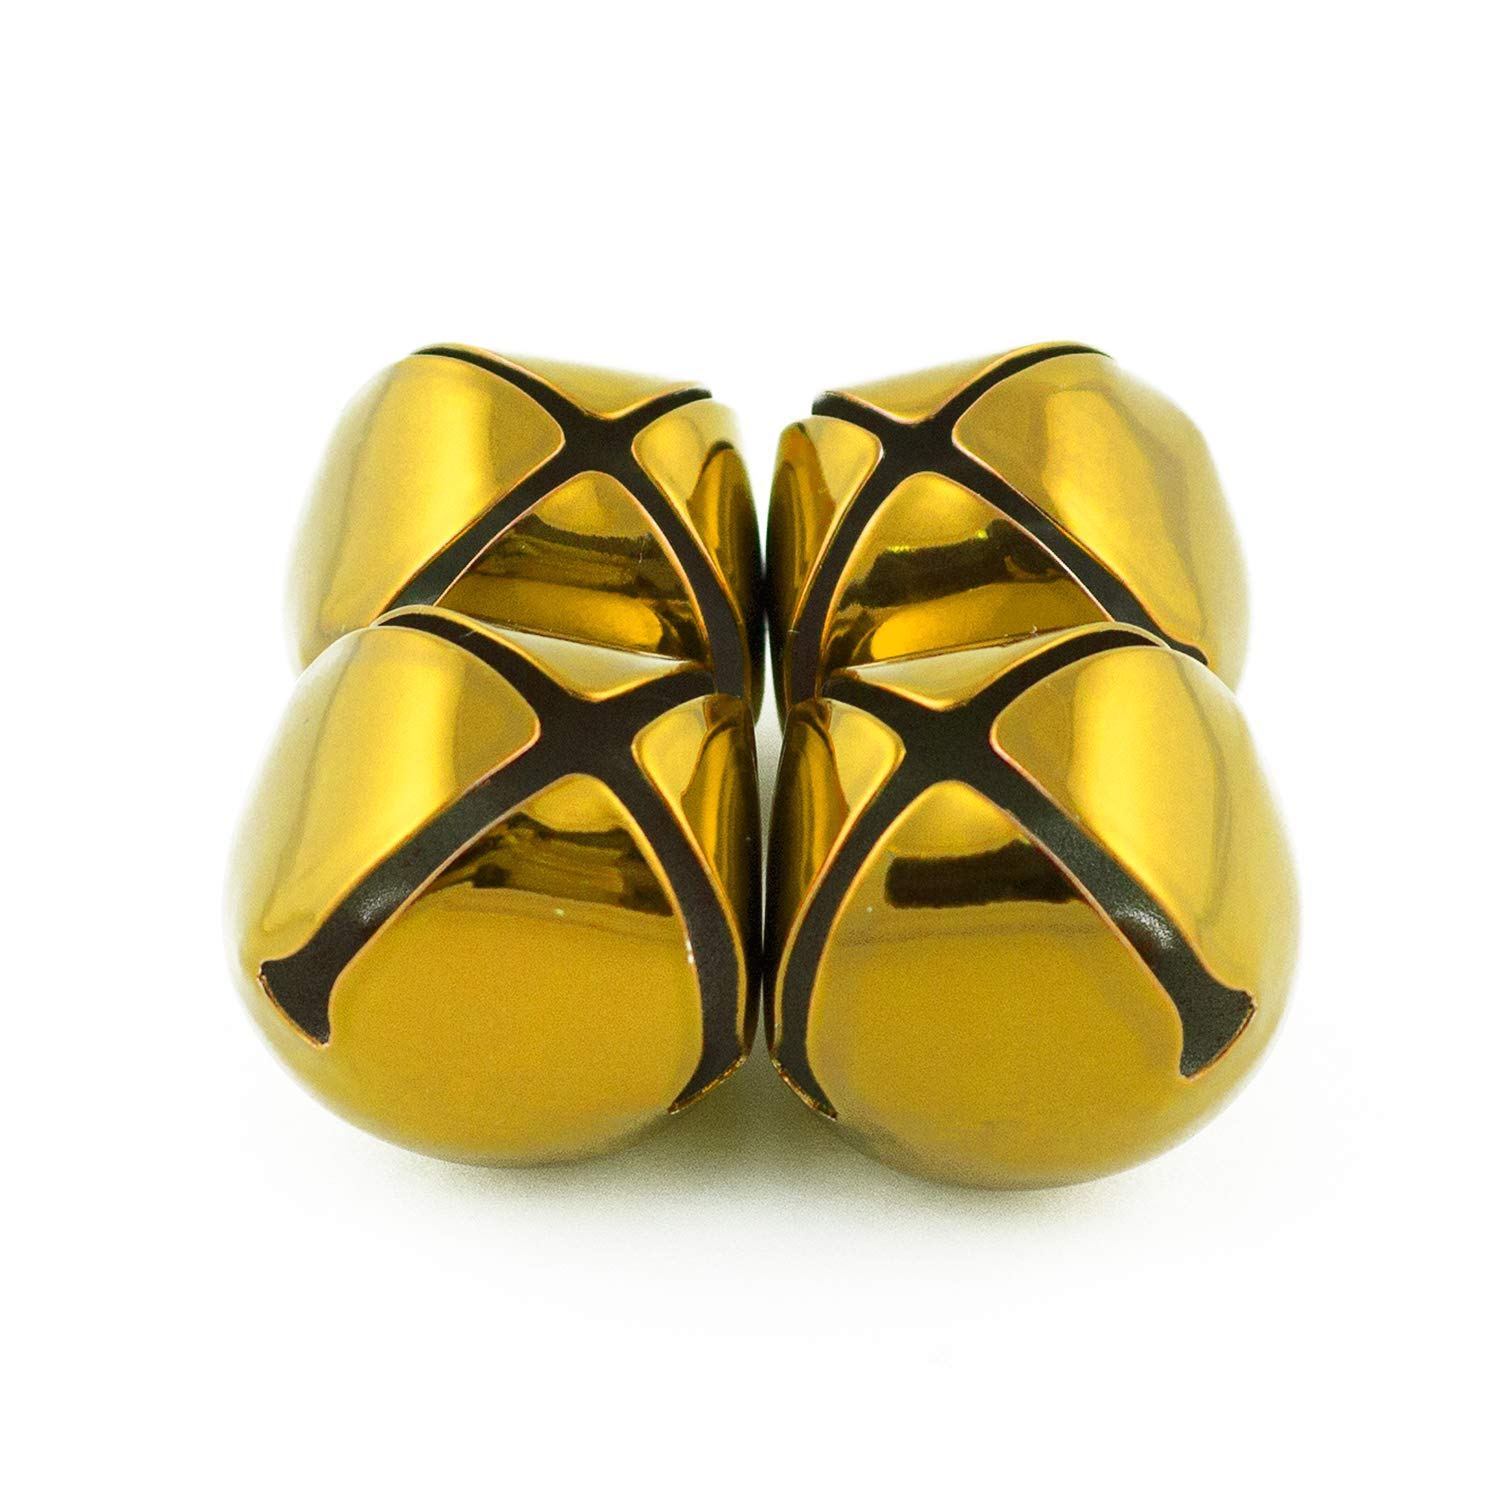 1.5 Inch 36mm Extra Large Giant Jumbo Craft Gold Jingle Bells Bulk 100 Pieces by Art Cove (Image #4)